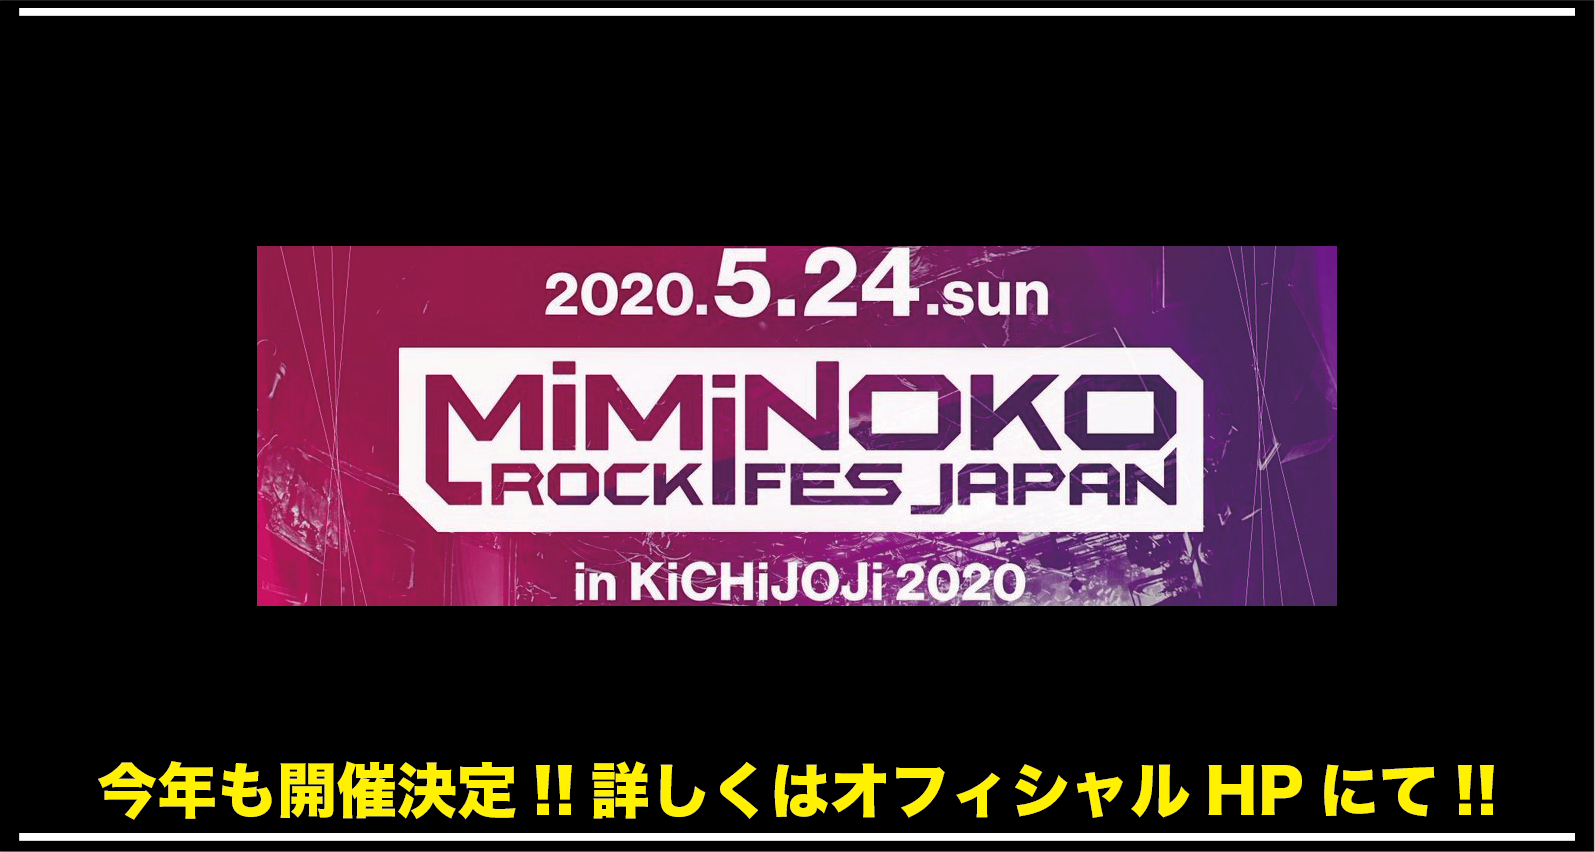 MiMiNOKOROCK FES JAPAN in 吉祥寺2020